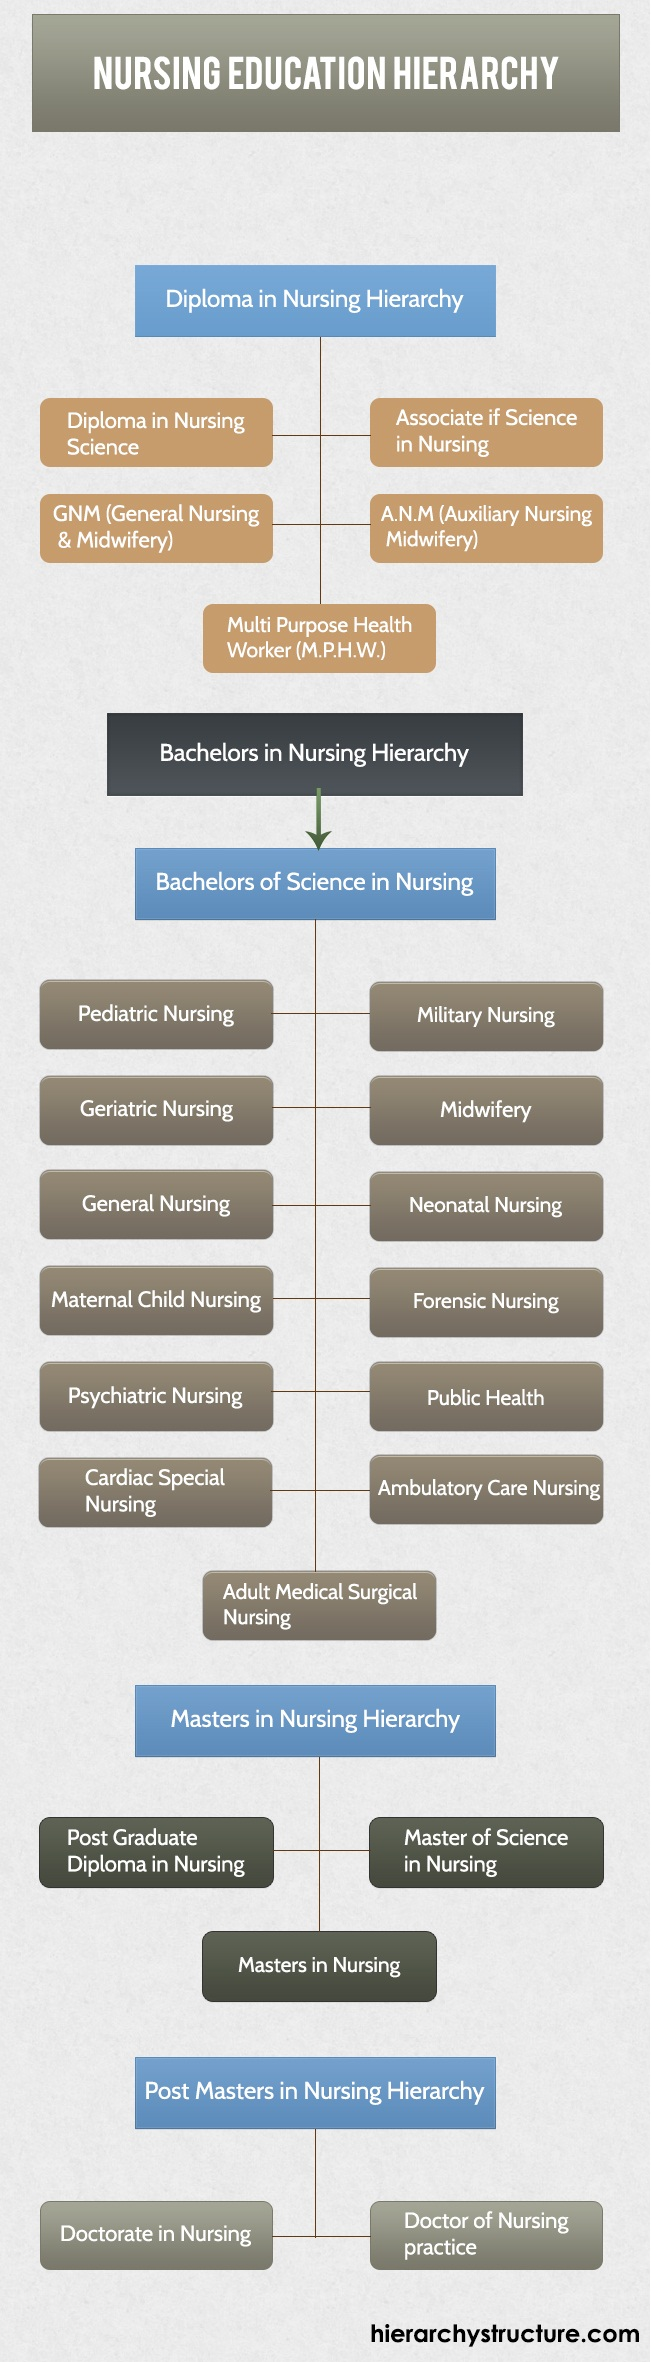 Nursing Education Hierarchy